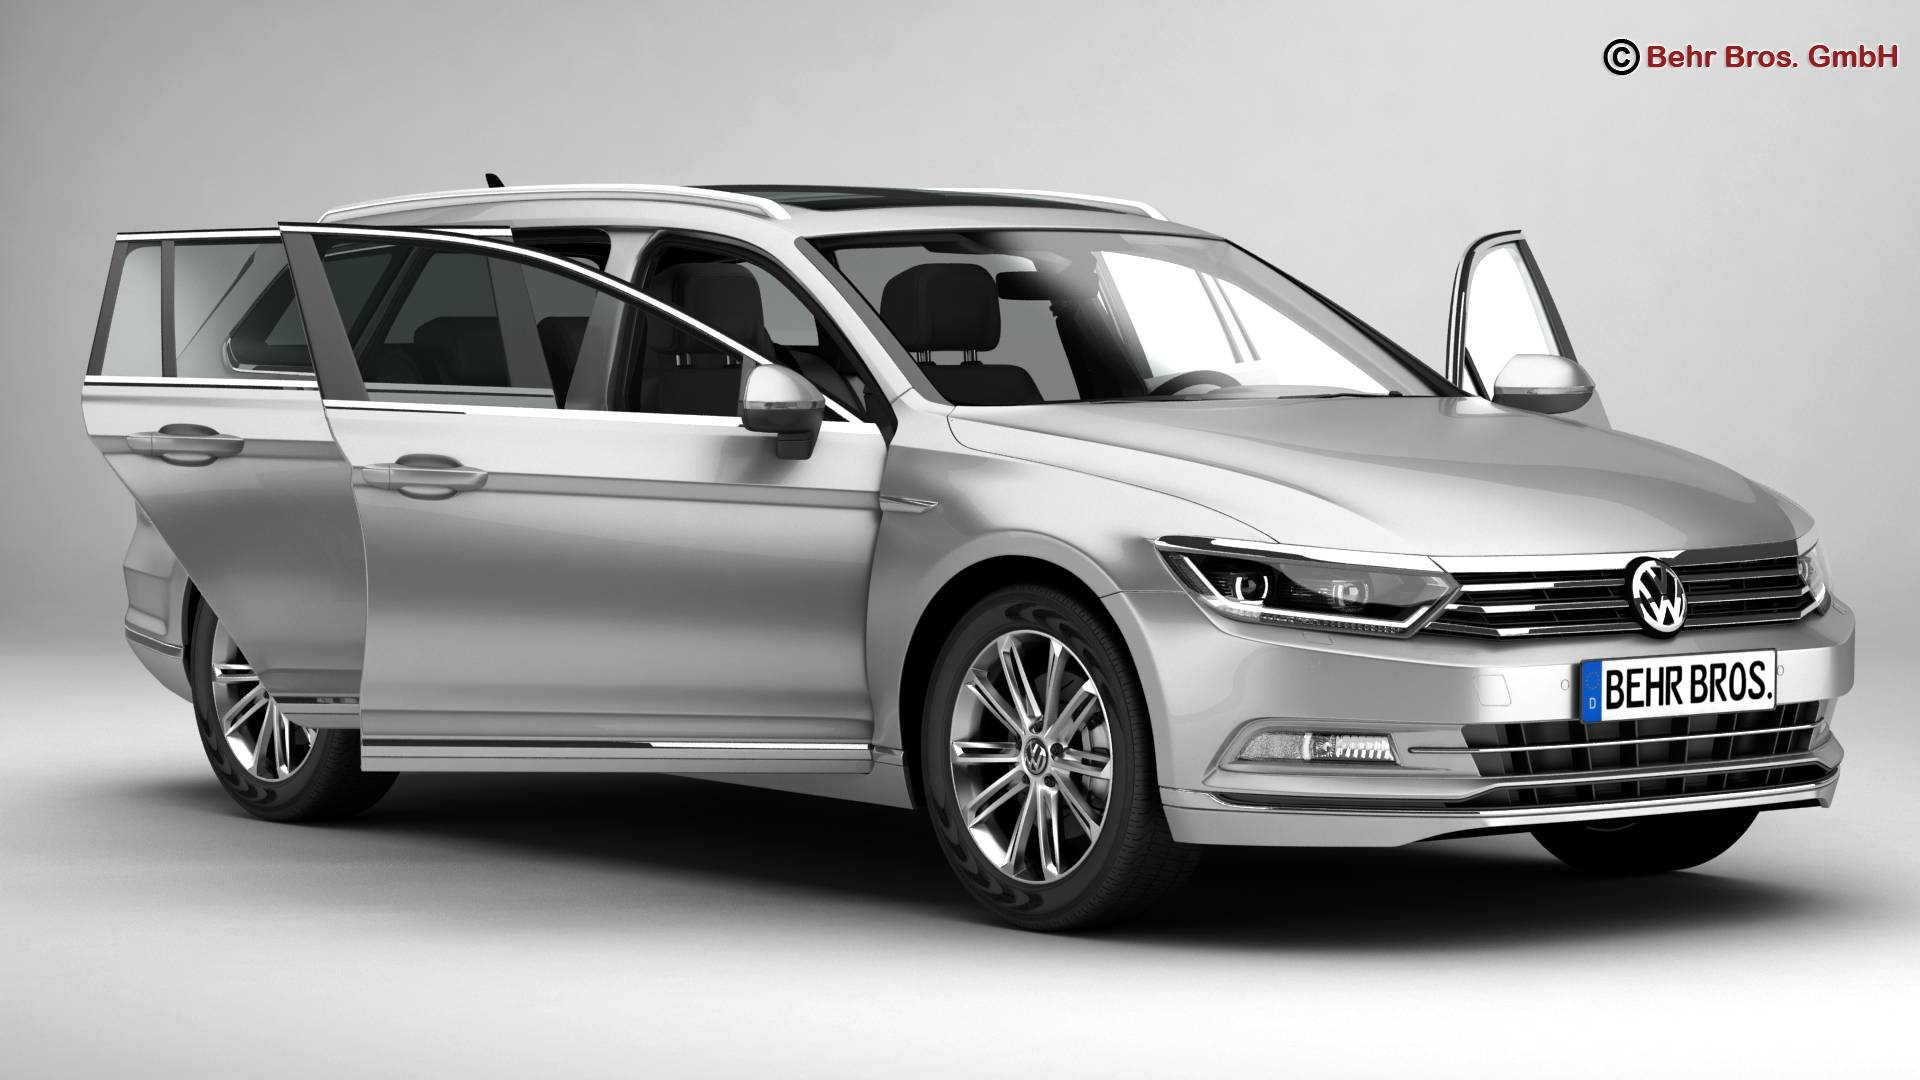 volkswagen passat variant 2015 3d model buy volkswagen. Black Bedroom Furniture Sets. Home Design Ideas